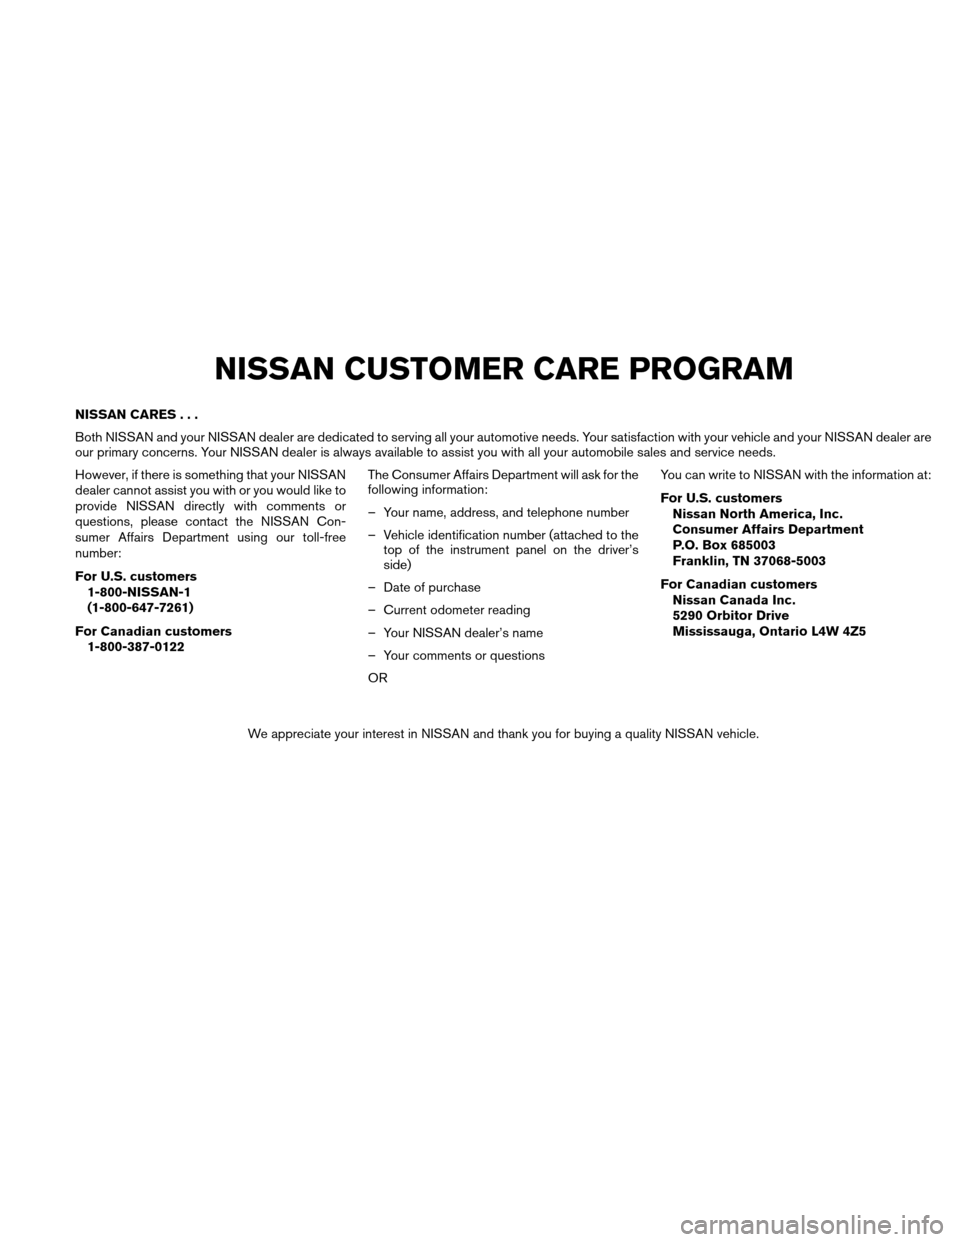 NISSAN VERSA HATCHBACK 2010 1.G Owners Manual, Page 5